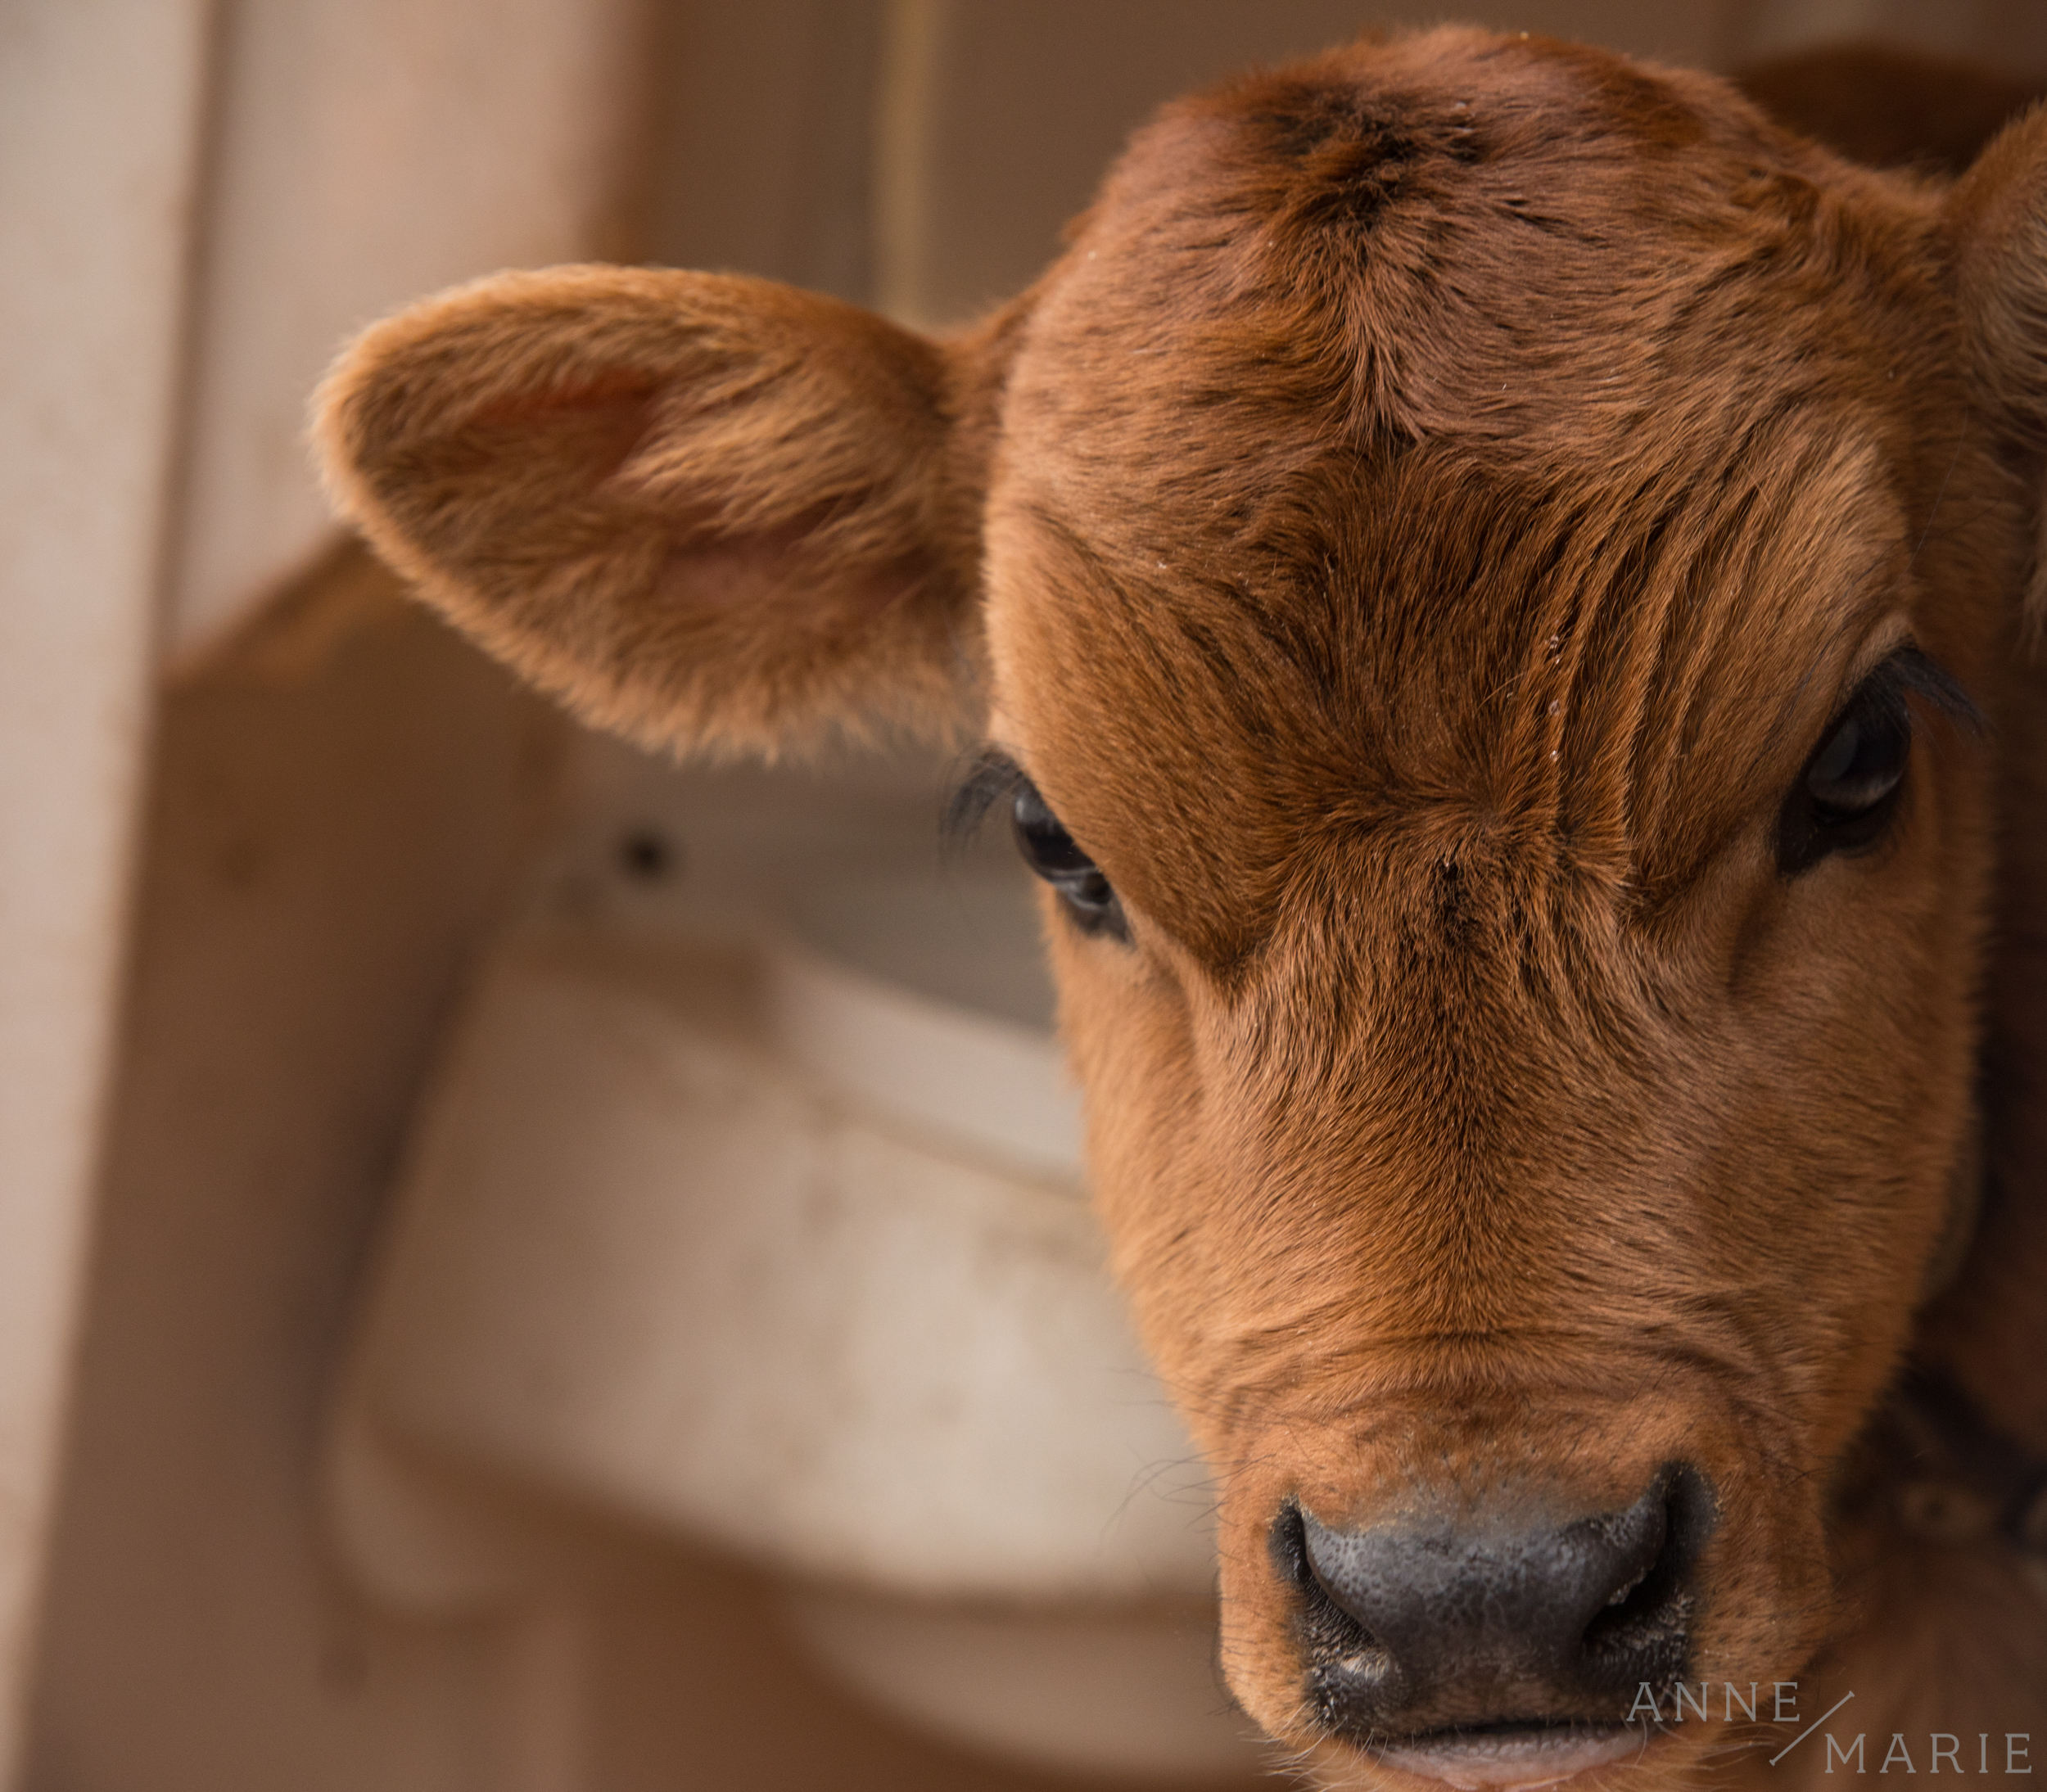 The baby cow poses for a picture.